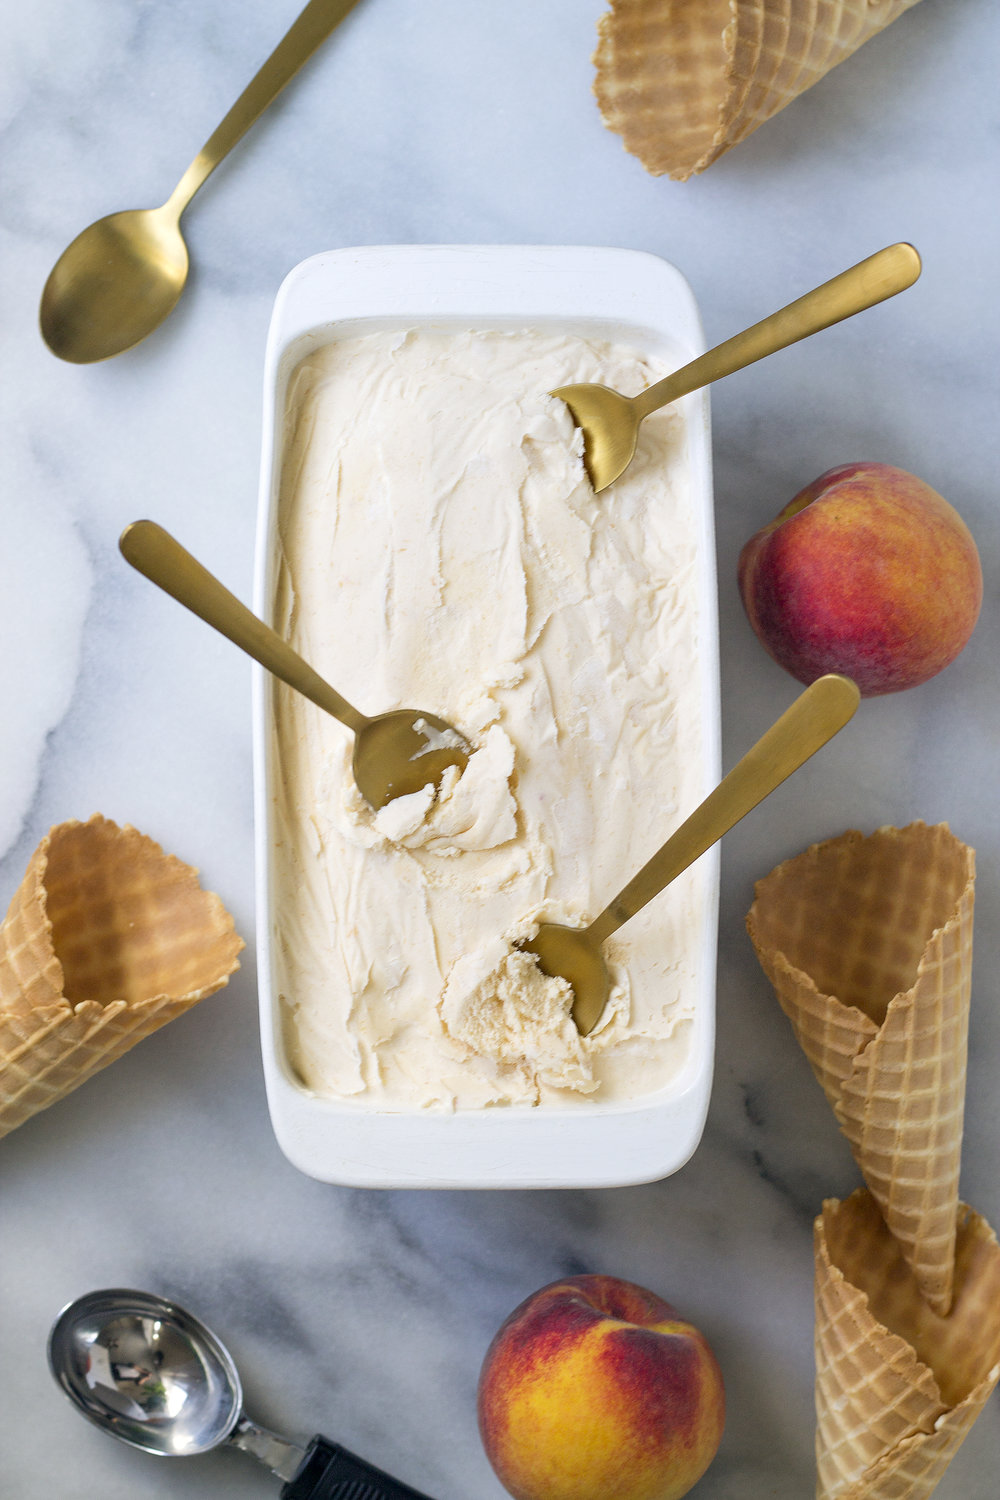 Homemade Peach Ice Cream! Get the recipe on UnusuallyLovely.com